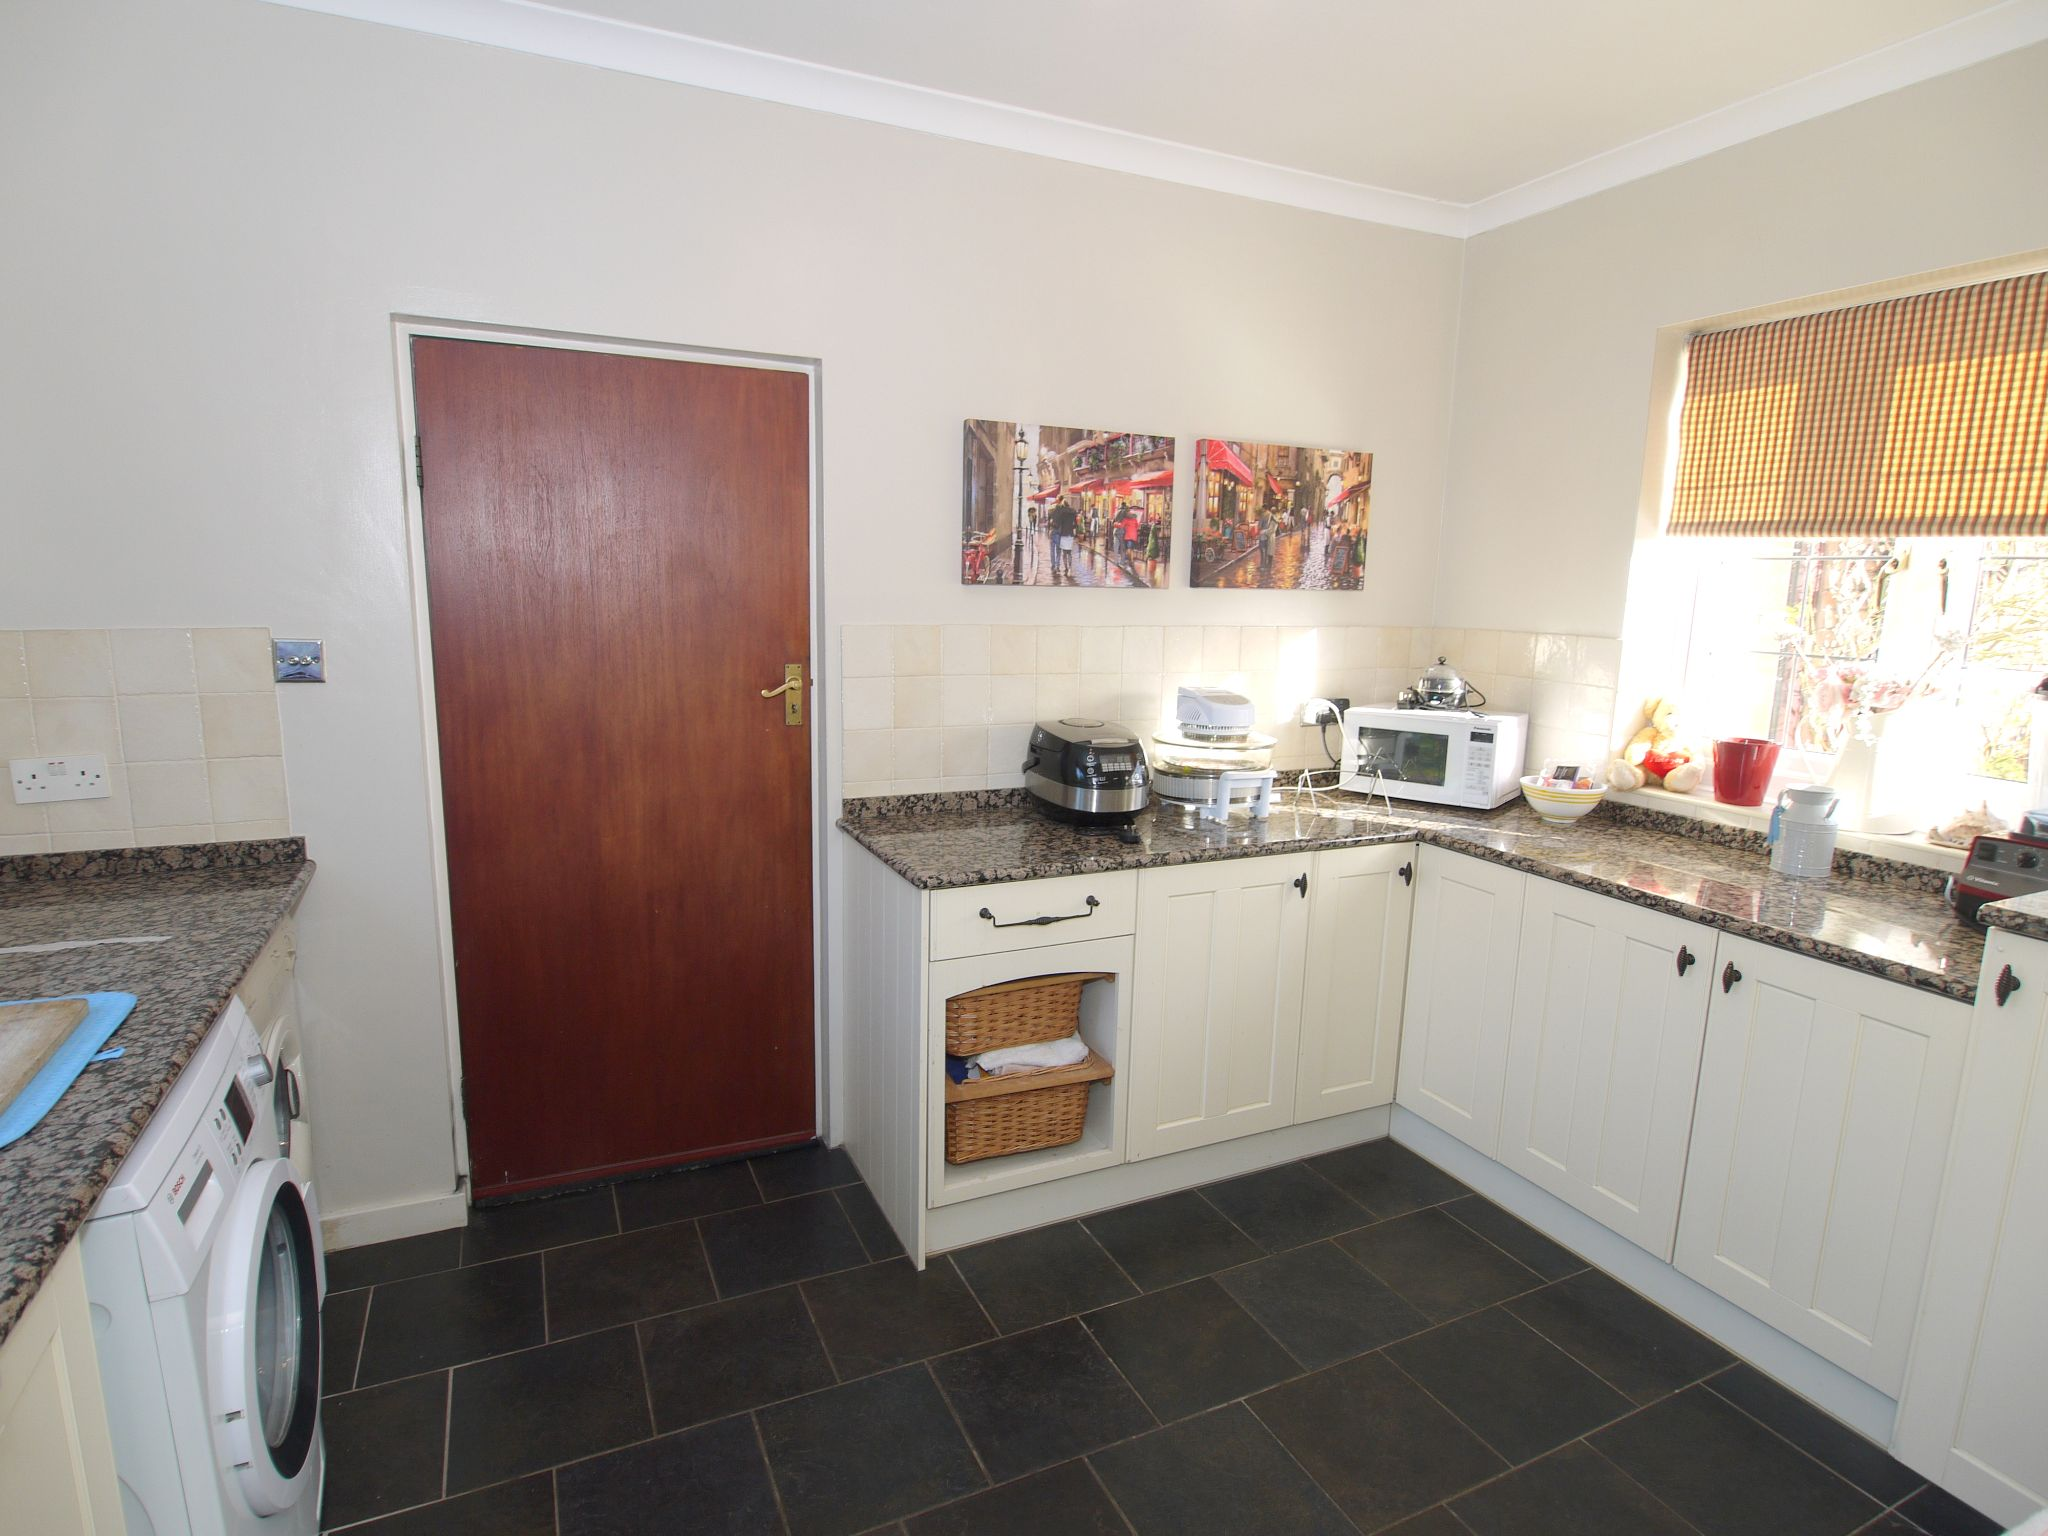 4 bedroom detached house For Sale in Farningham - Photograph 3